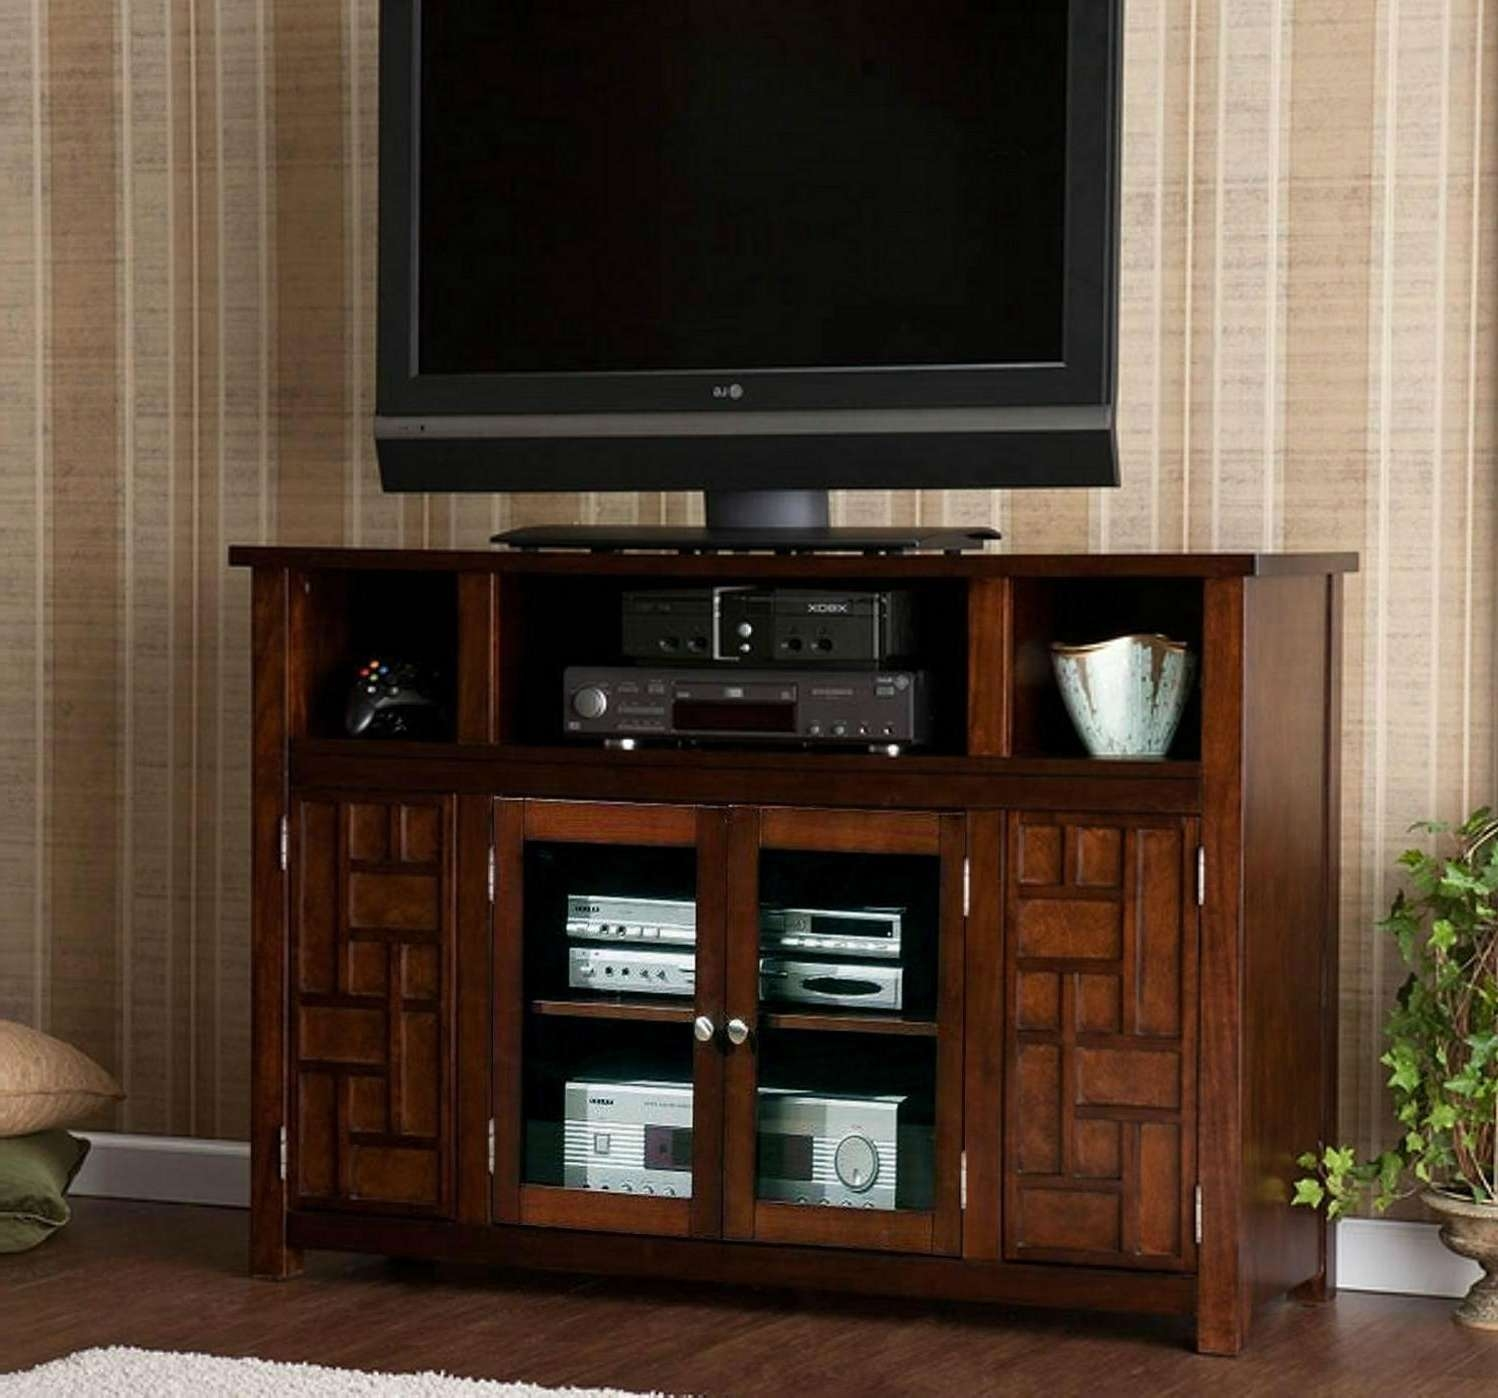 48 Inch Walnut Funky Doors Retro Tv Cabinet Wood Furniture – Wd With Regard To Funky Tv Cabinets (View 12 of 20)